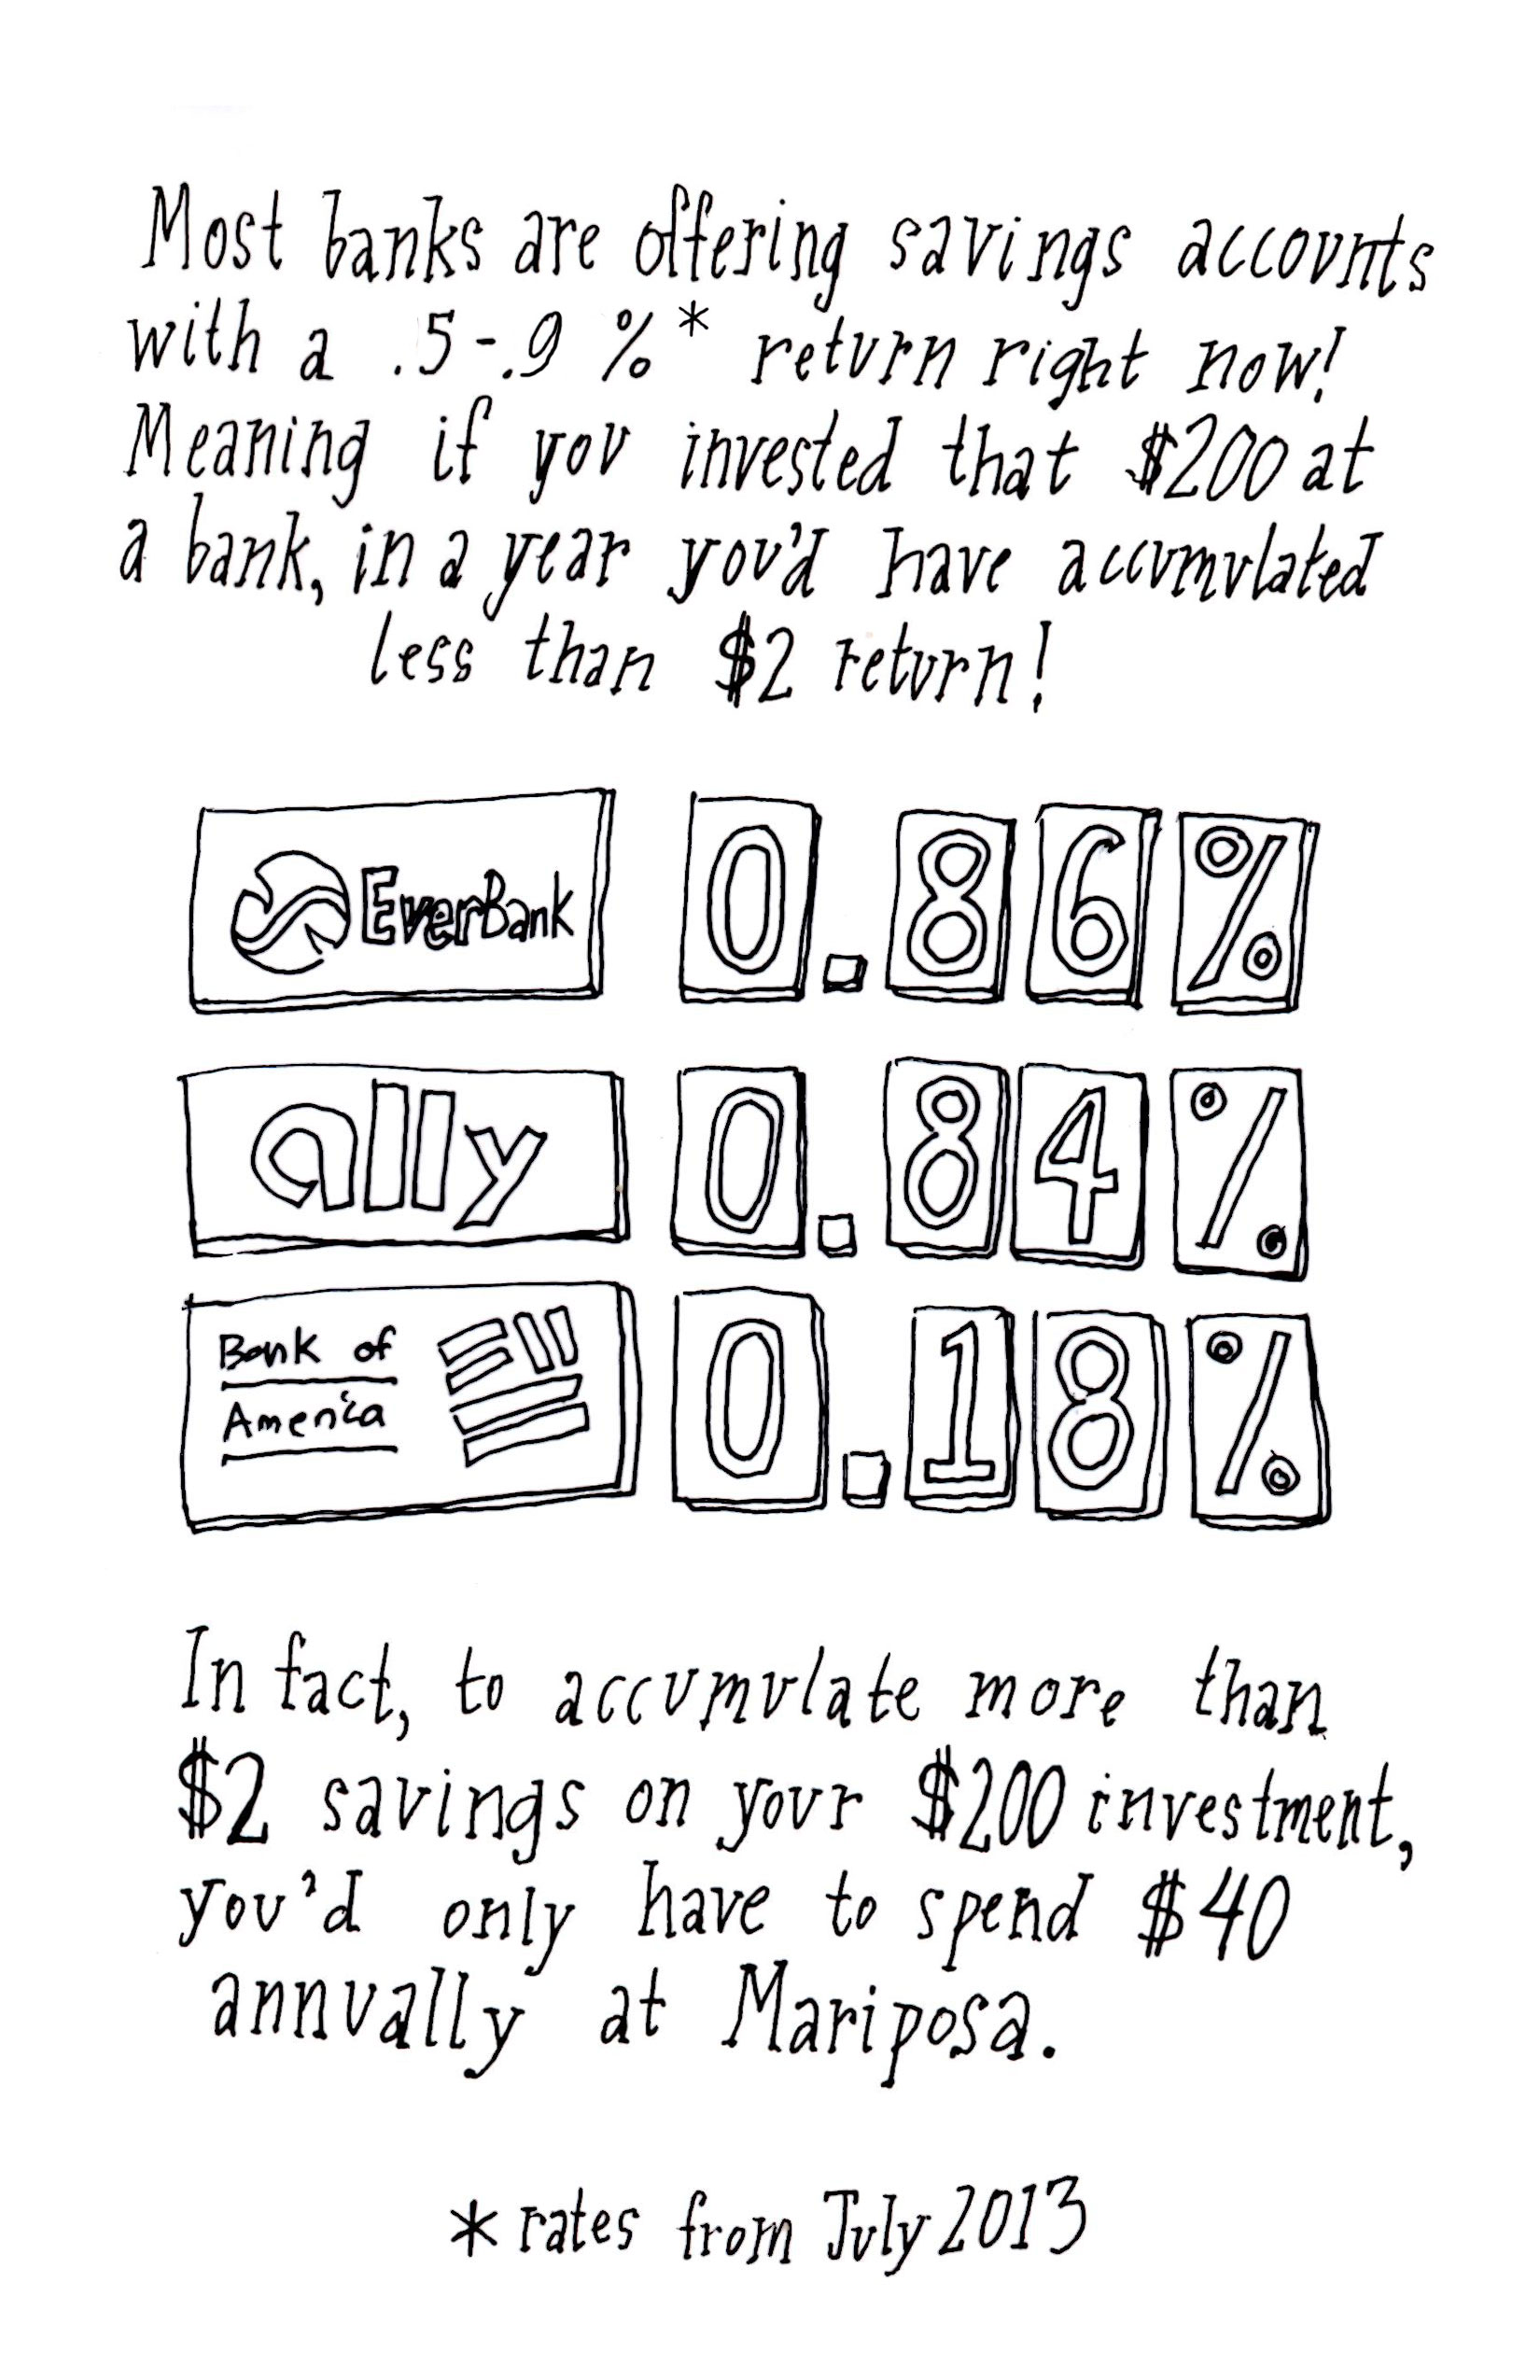 co-op equity page 4